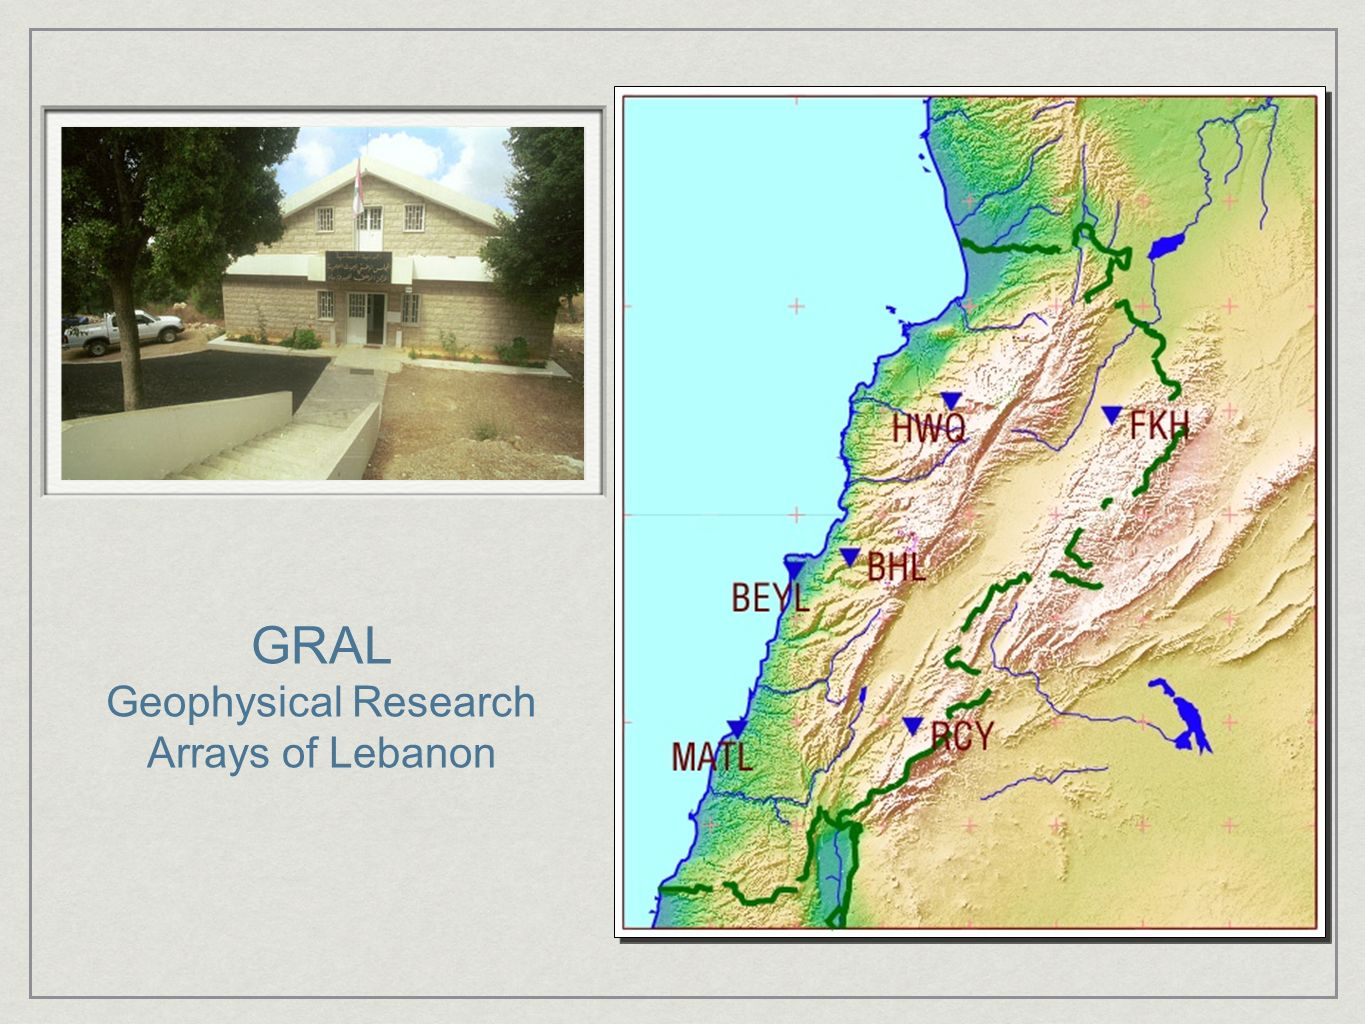 Geophysical Research Arrays of Lebanon